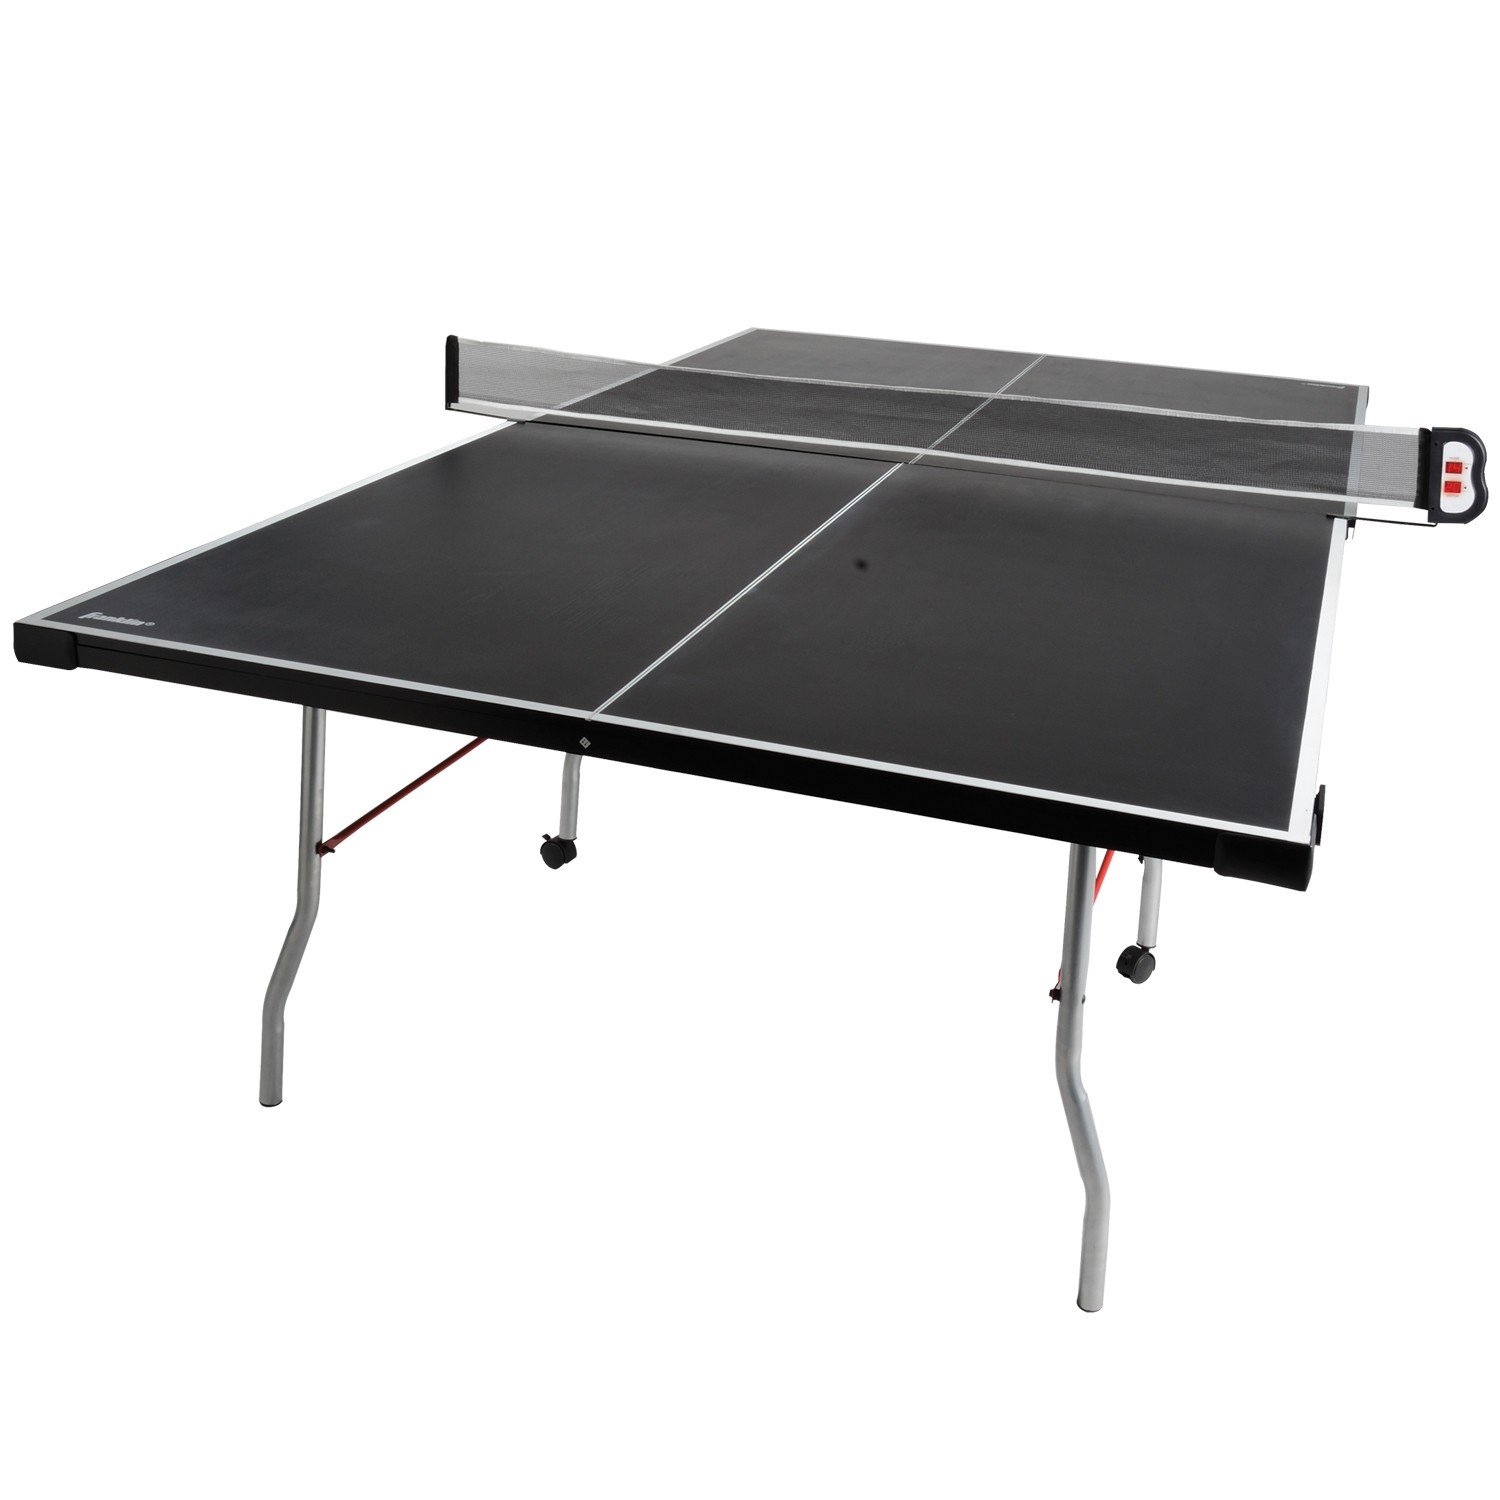 Amazing Amazon.com : Franklin Sports Electro Pro Table Tennis Table : Ping Pong  Table Outdoor : Sports U0026 Outdoors